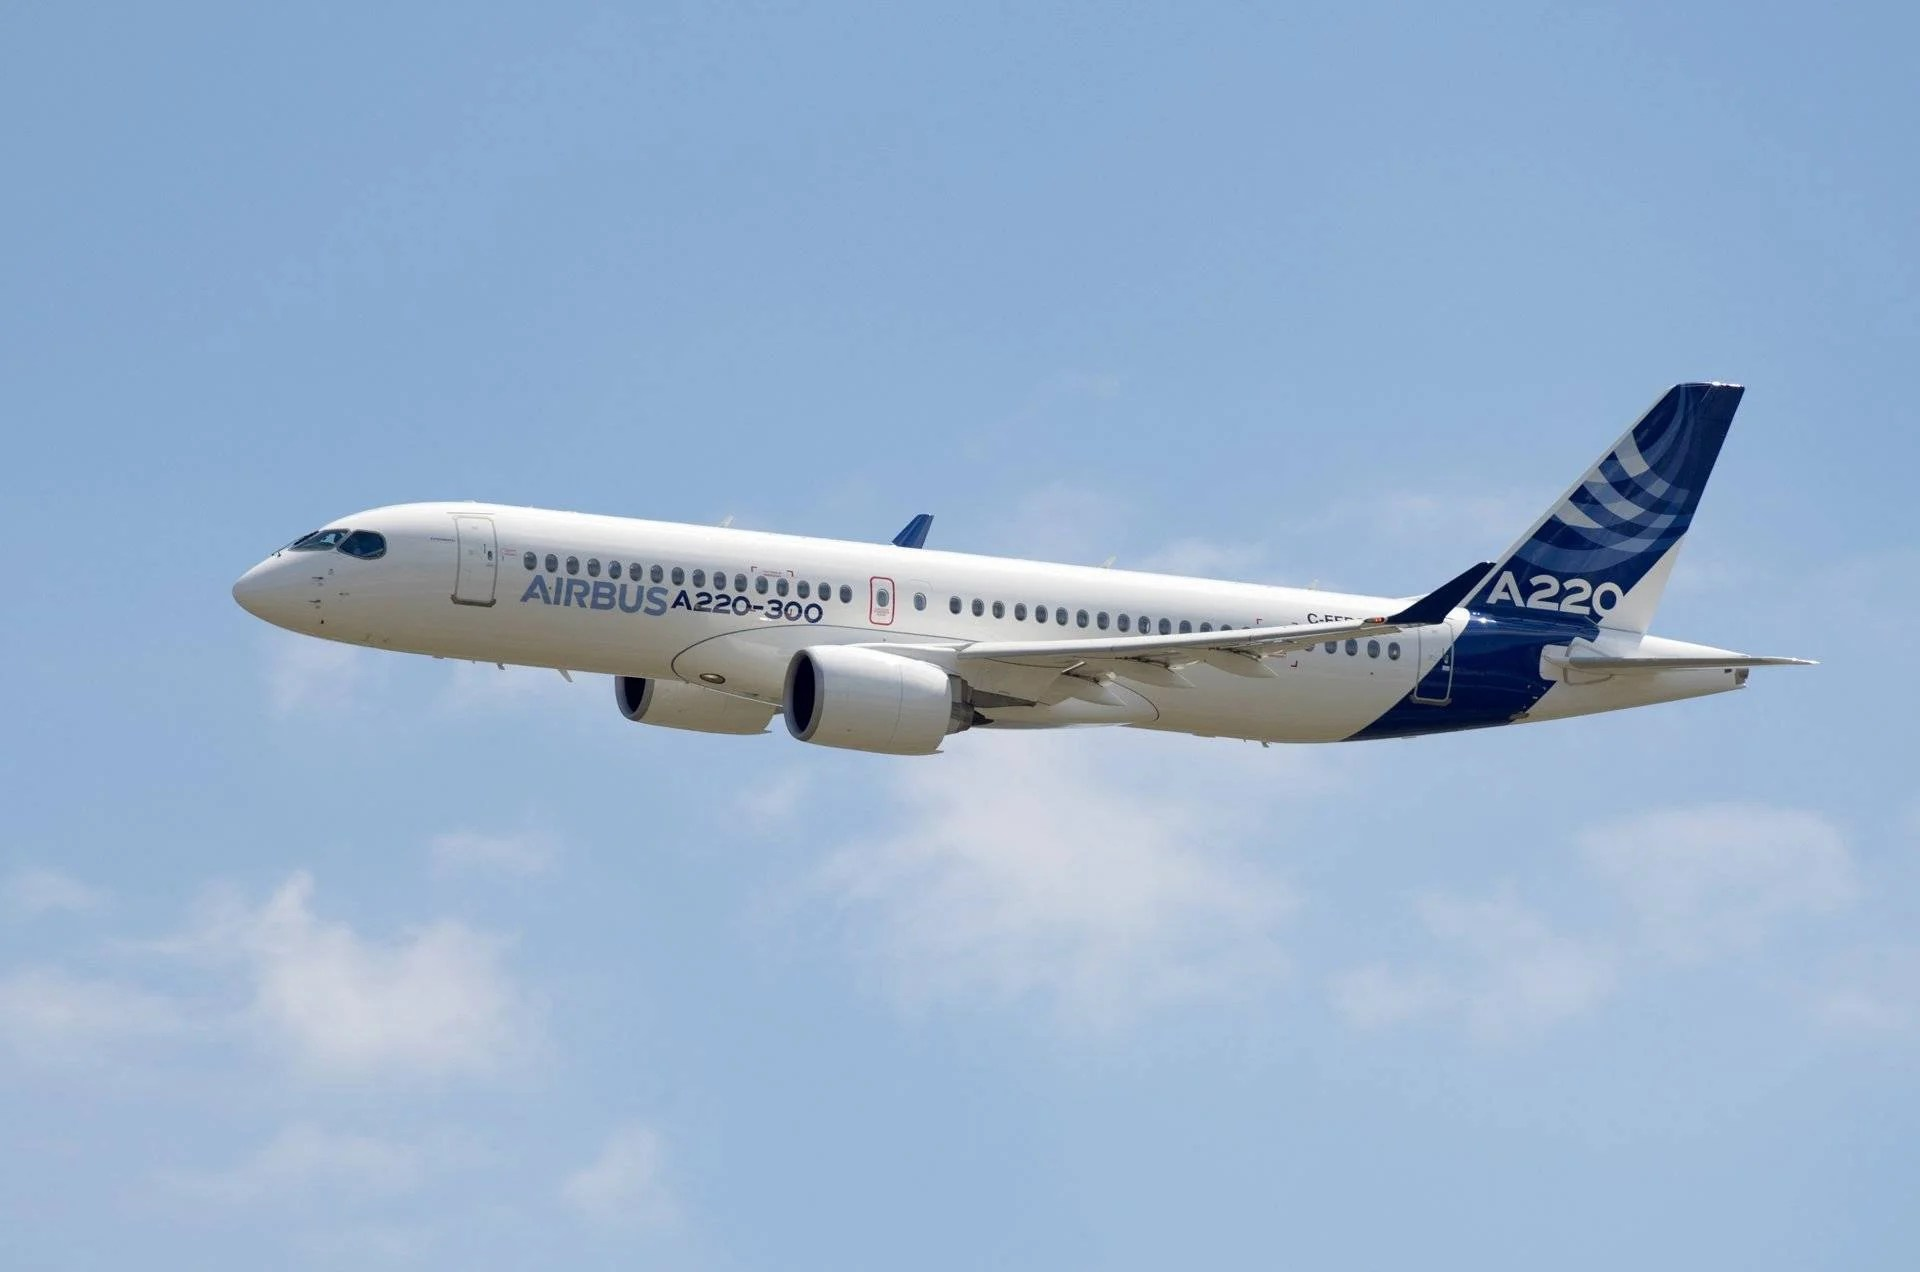 Airbus A220-100 (Image by Airbus)